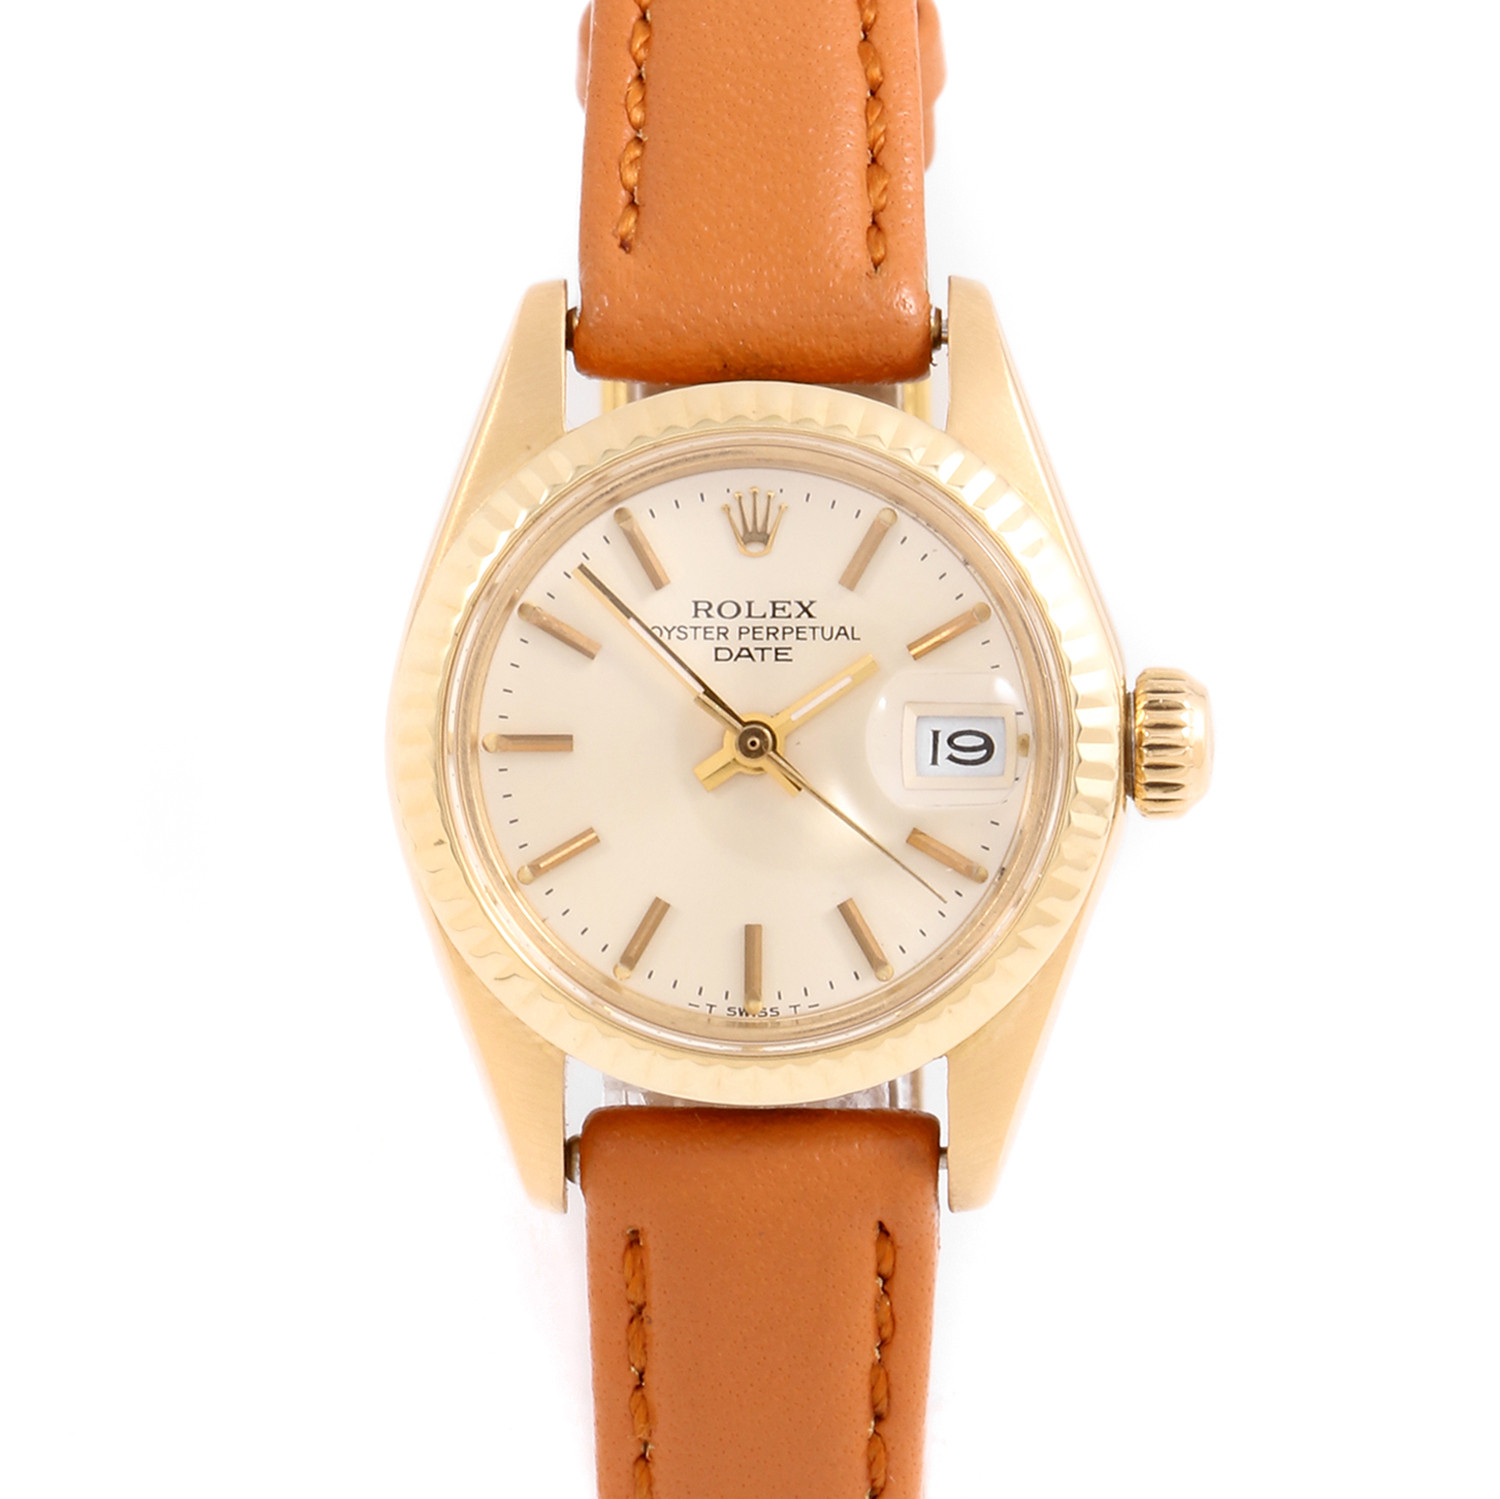 Rolex 6917 Ladies Datejust 26mm Yellow Gold w/ Silver Stick Dial & Fluted Bezel with Taupe Leather Strap - Pre-Owned